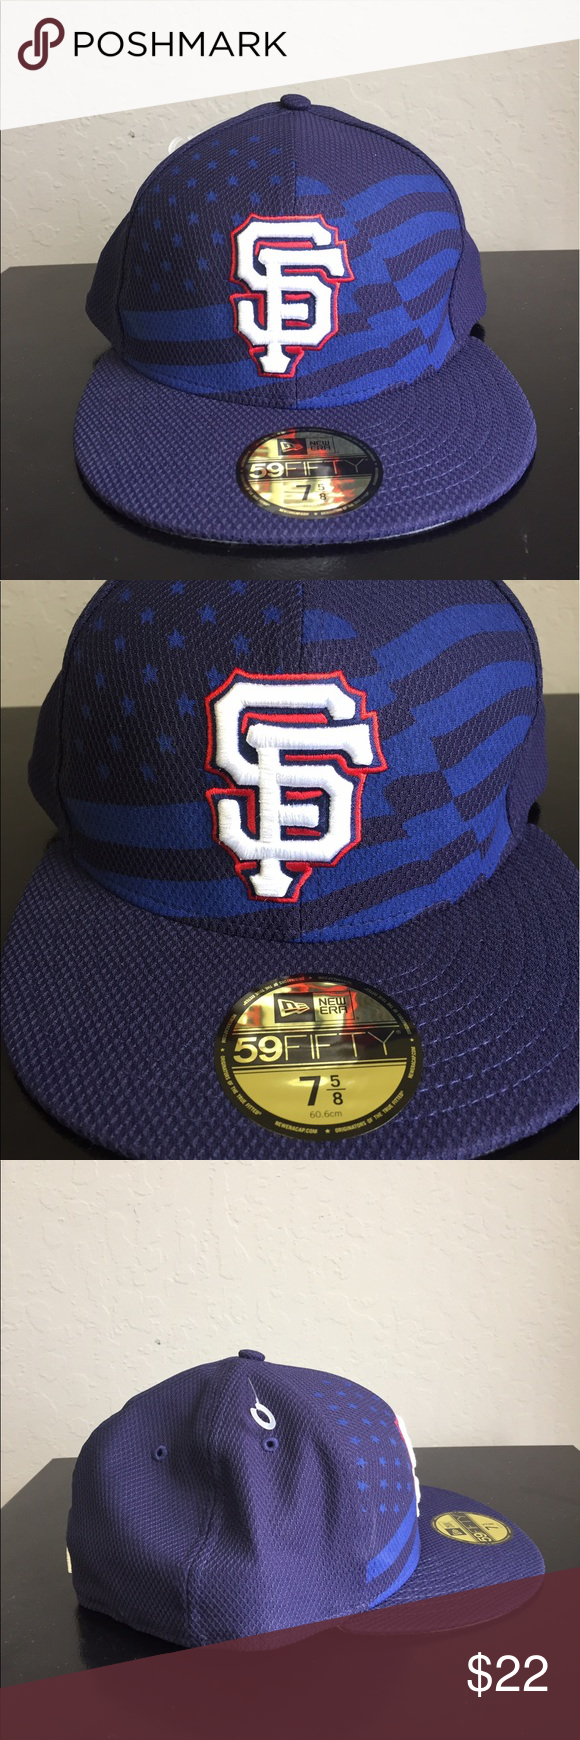 separation shoes 16cb4 d4ba2 NewEra 59Fifty 4th of July SF Giants Hat 7 5 8 San Francisco Giants New